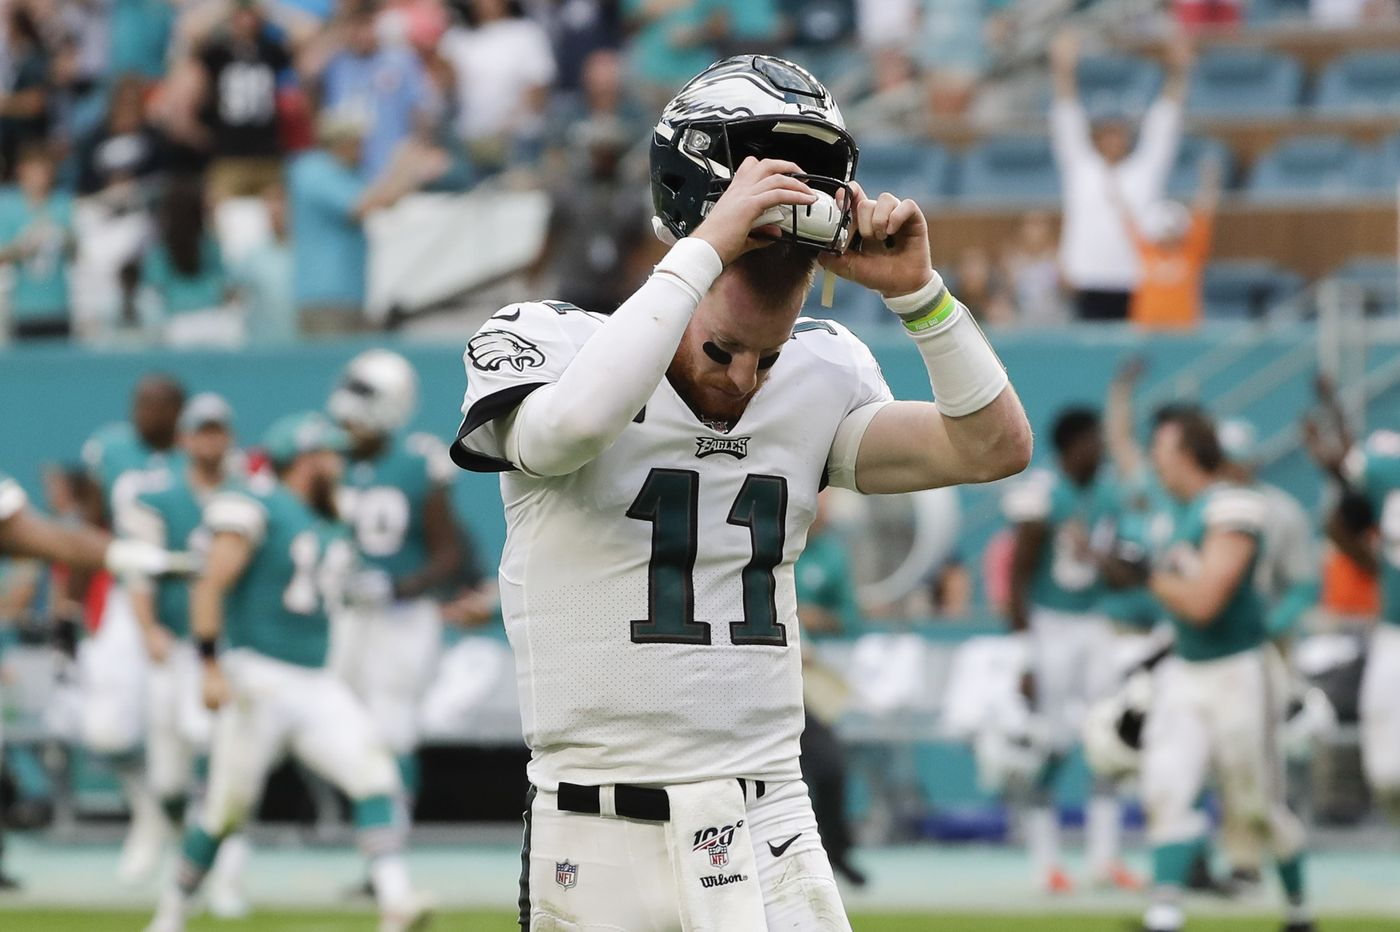 Doug Pederson's Eagles are history after historically bad loss to Miami Dolphins | Bob Ford